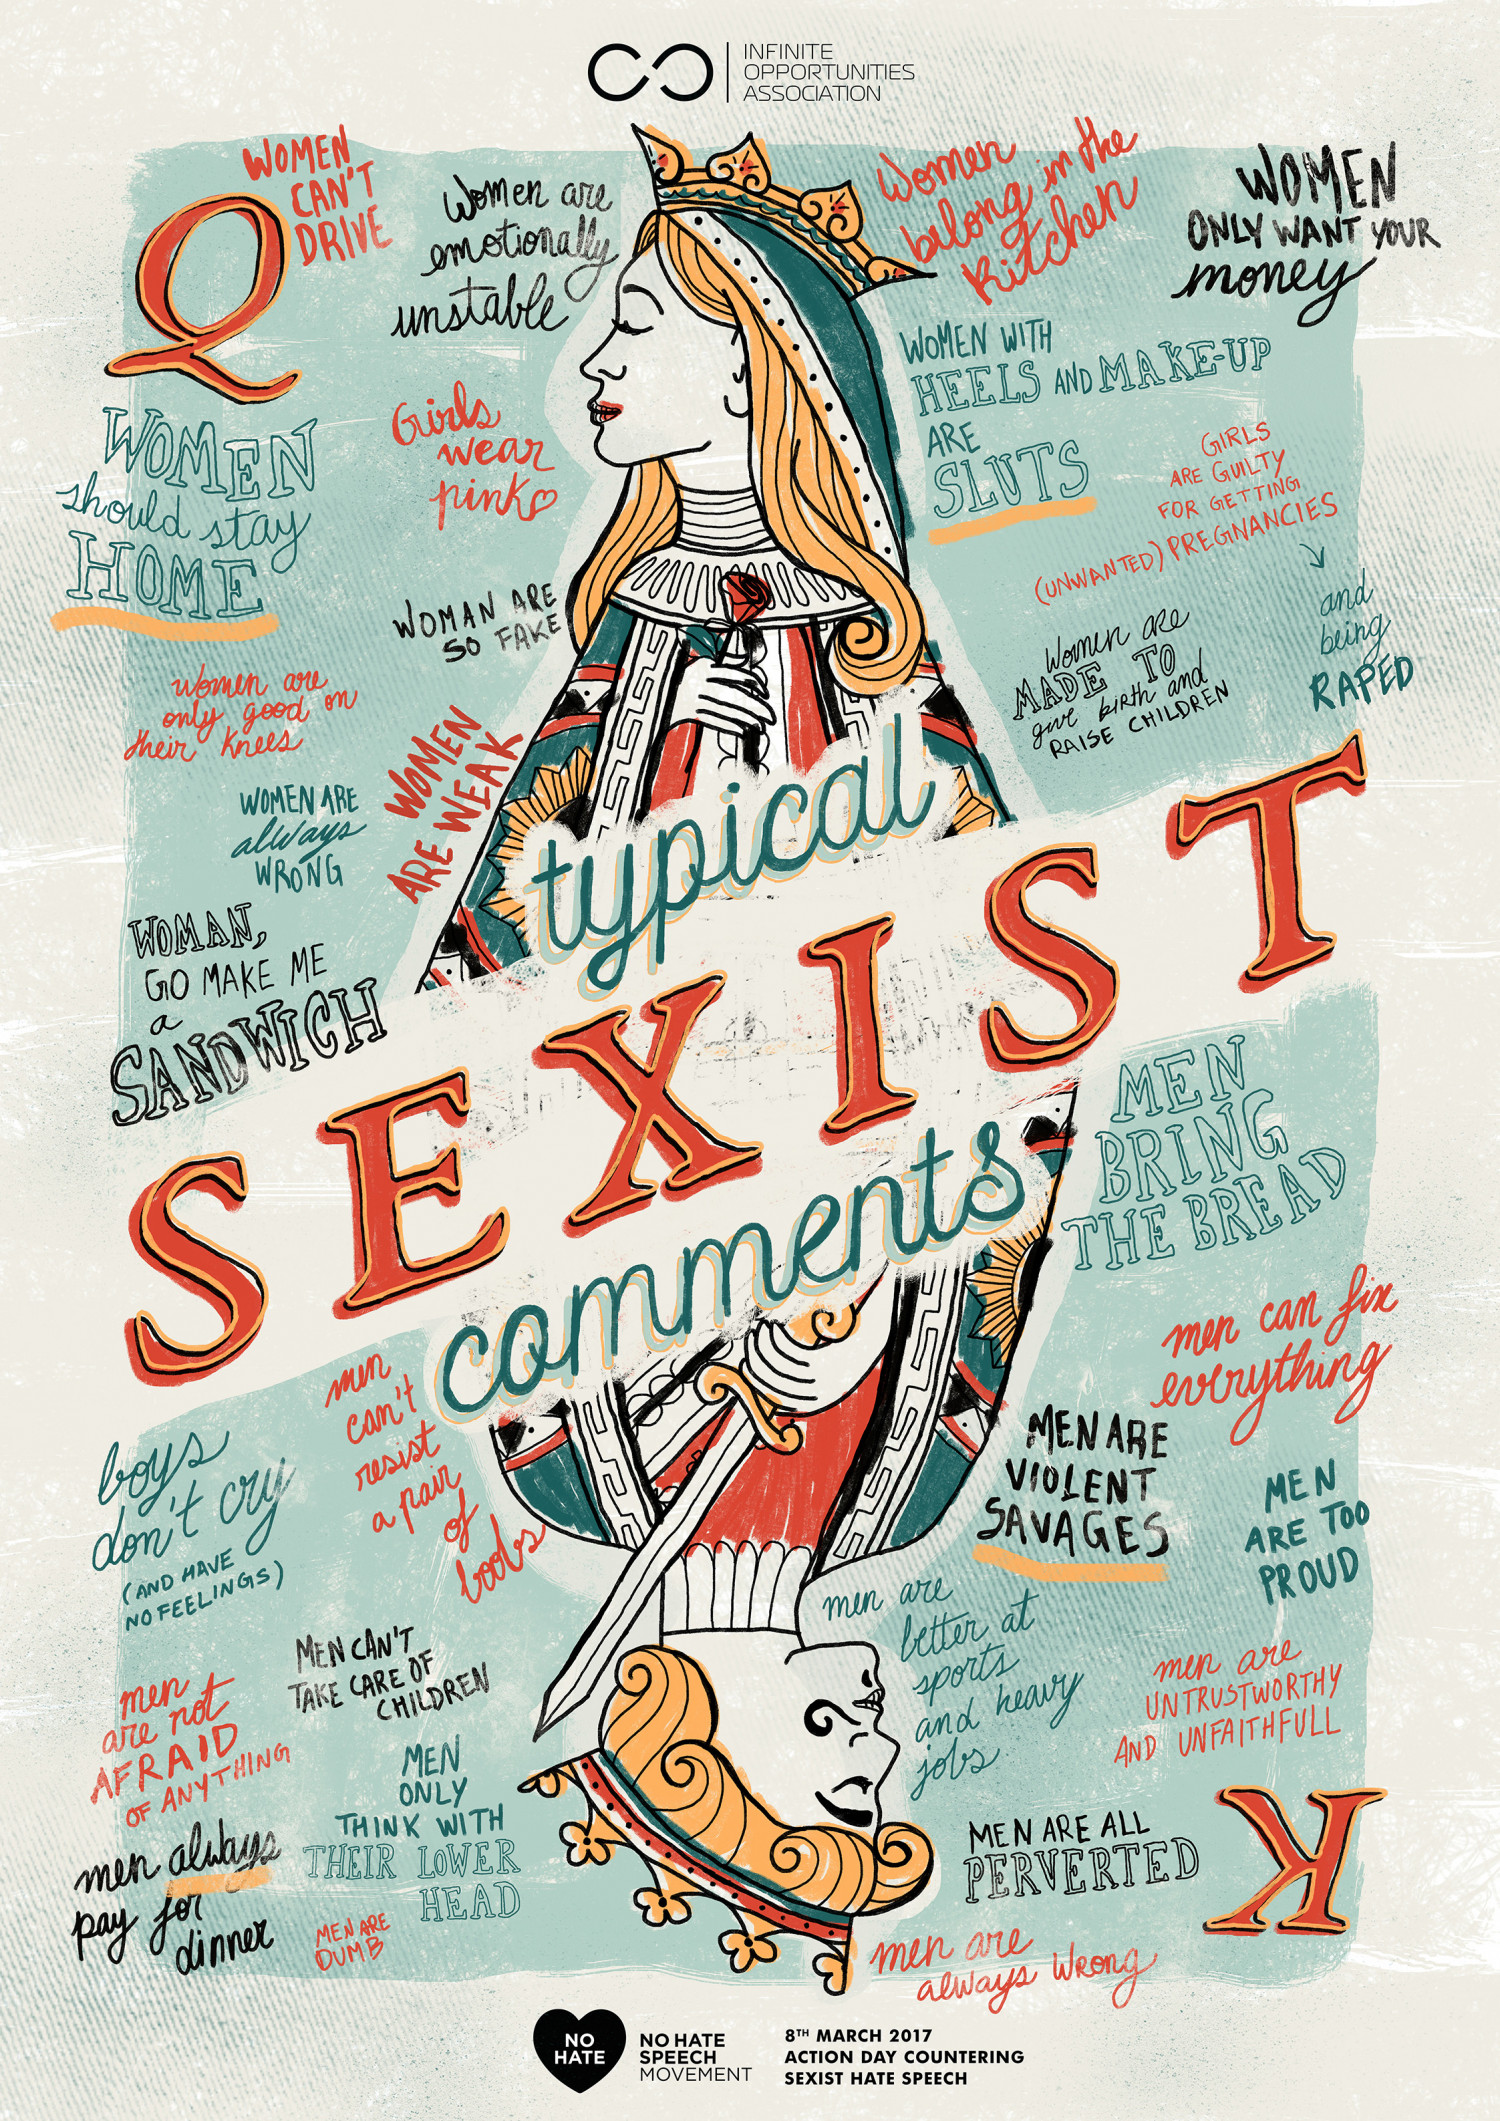 Typical sexist comments Infographic